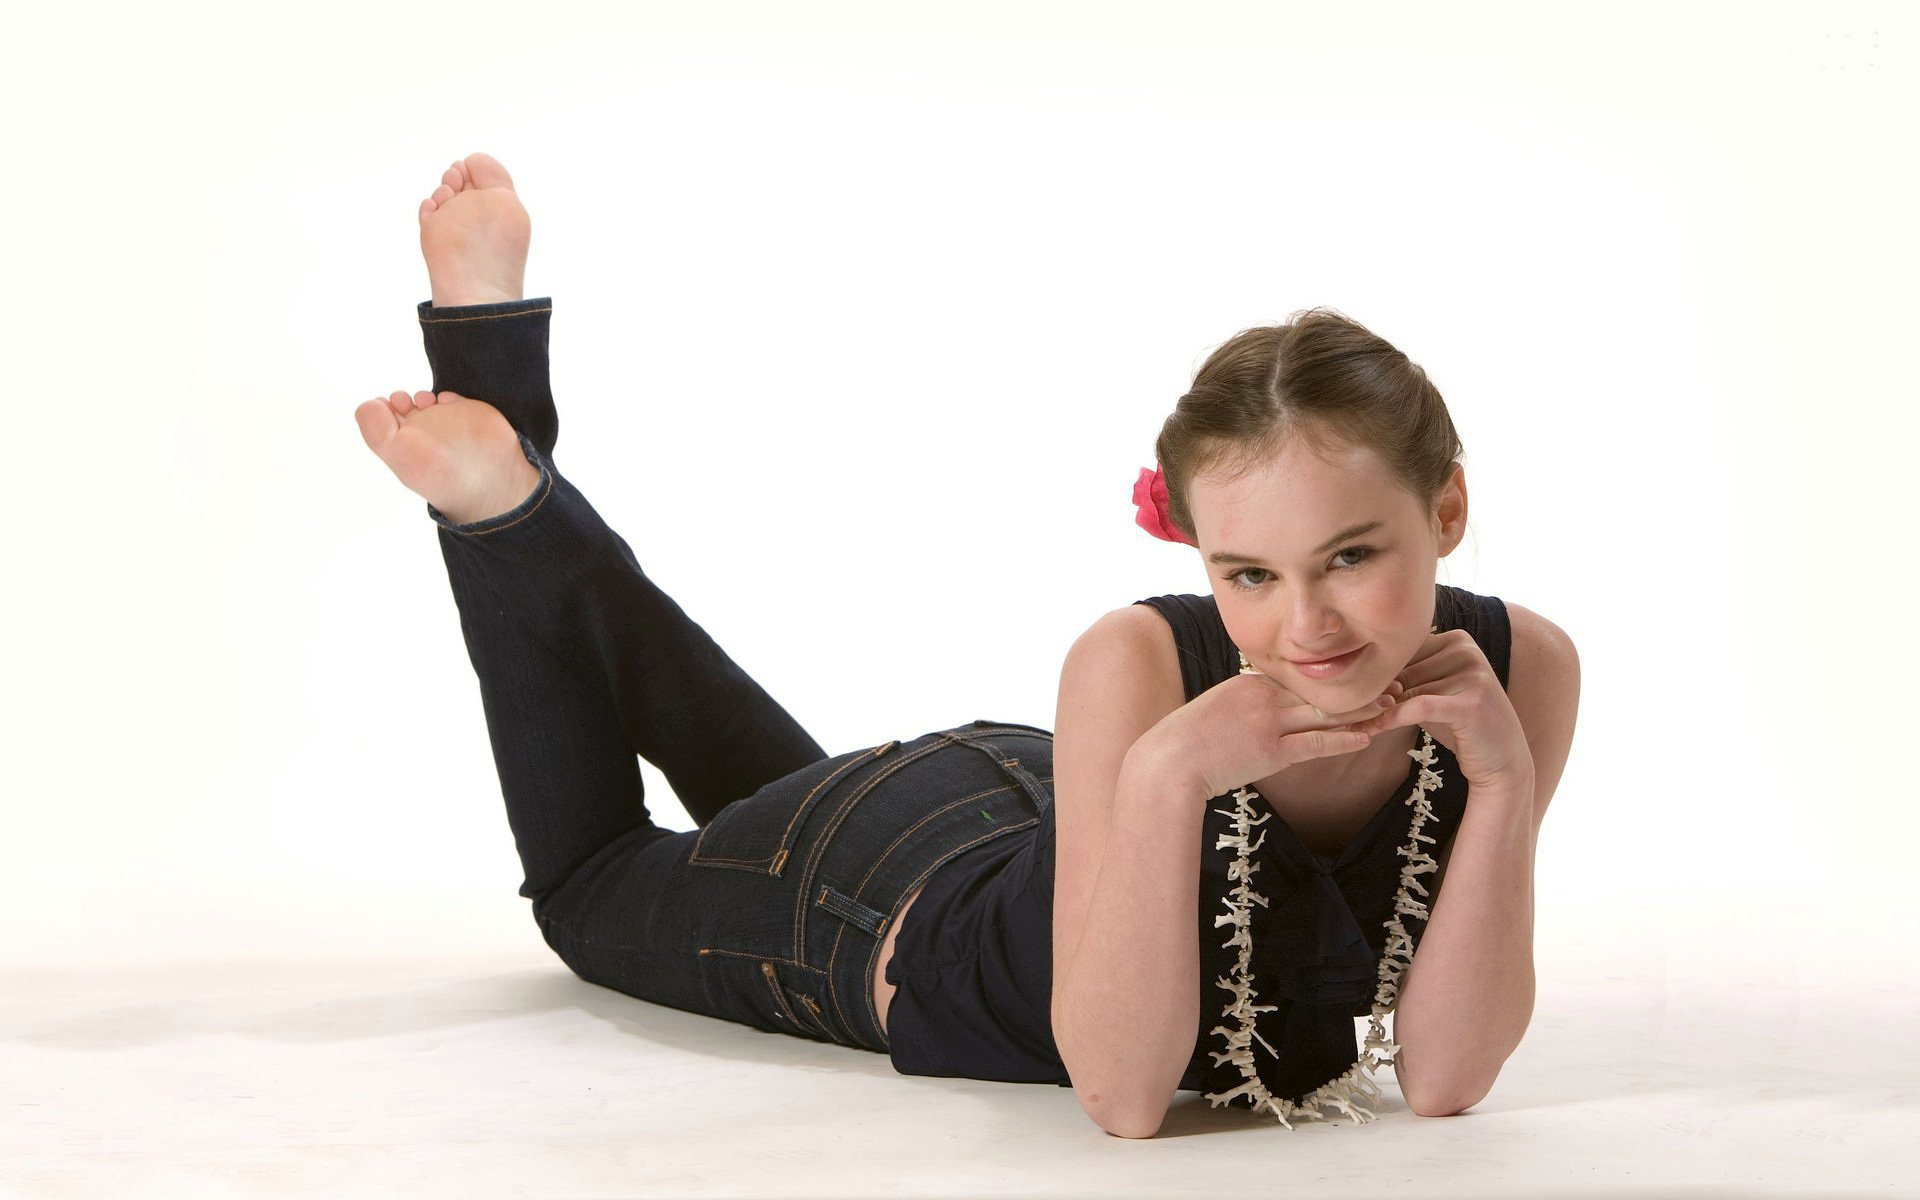 madeline carroll full hd wallpaper and background image